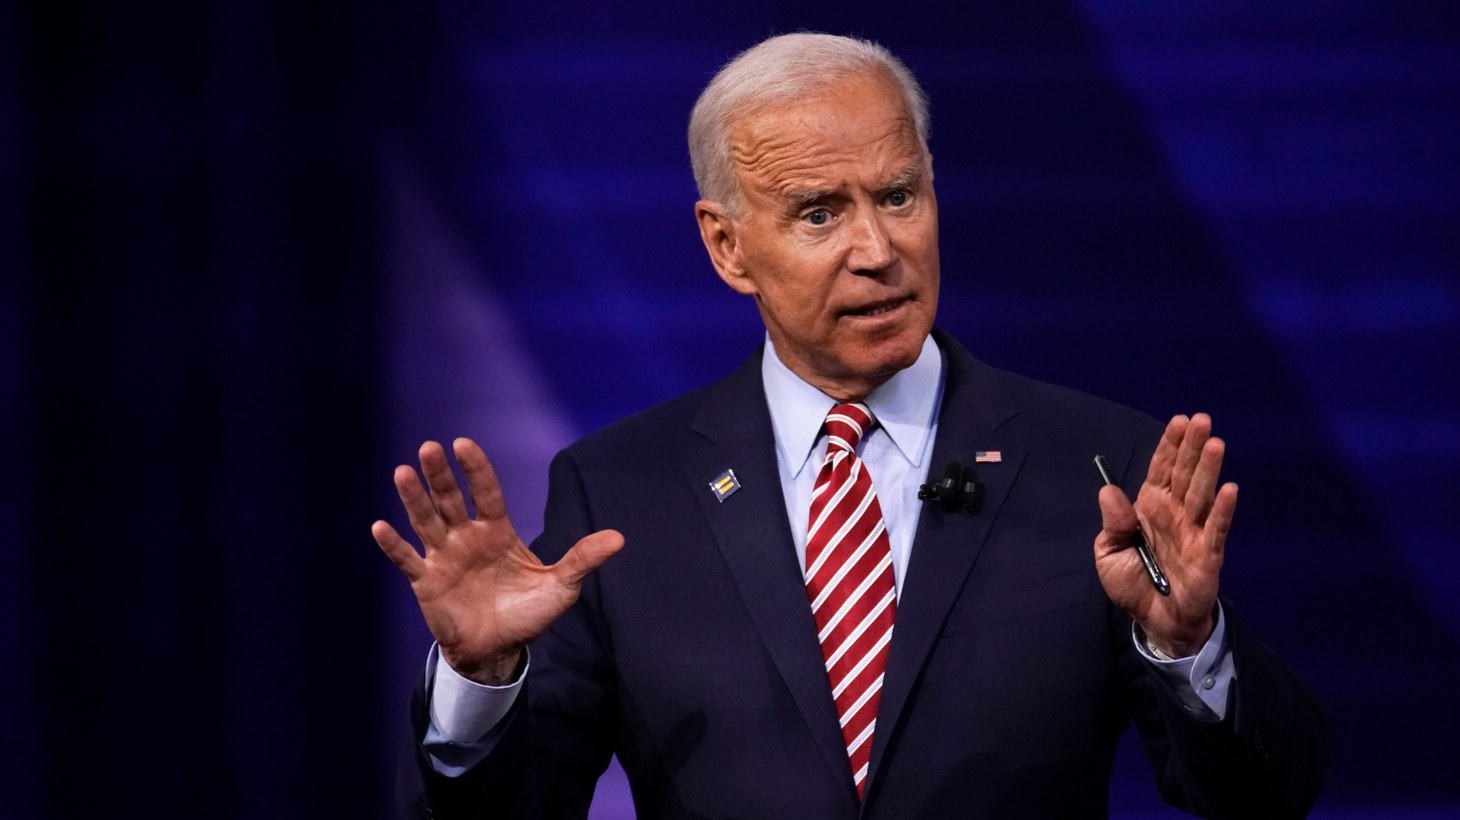 Democratic 2020 U.S. presidential candidate and former Vice President Joe Biden participates in a televised town hall on CNN dedicated to LGBTQ issues in Los Angeles, California, U.S. October 10, 2019.